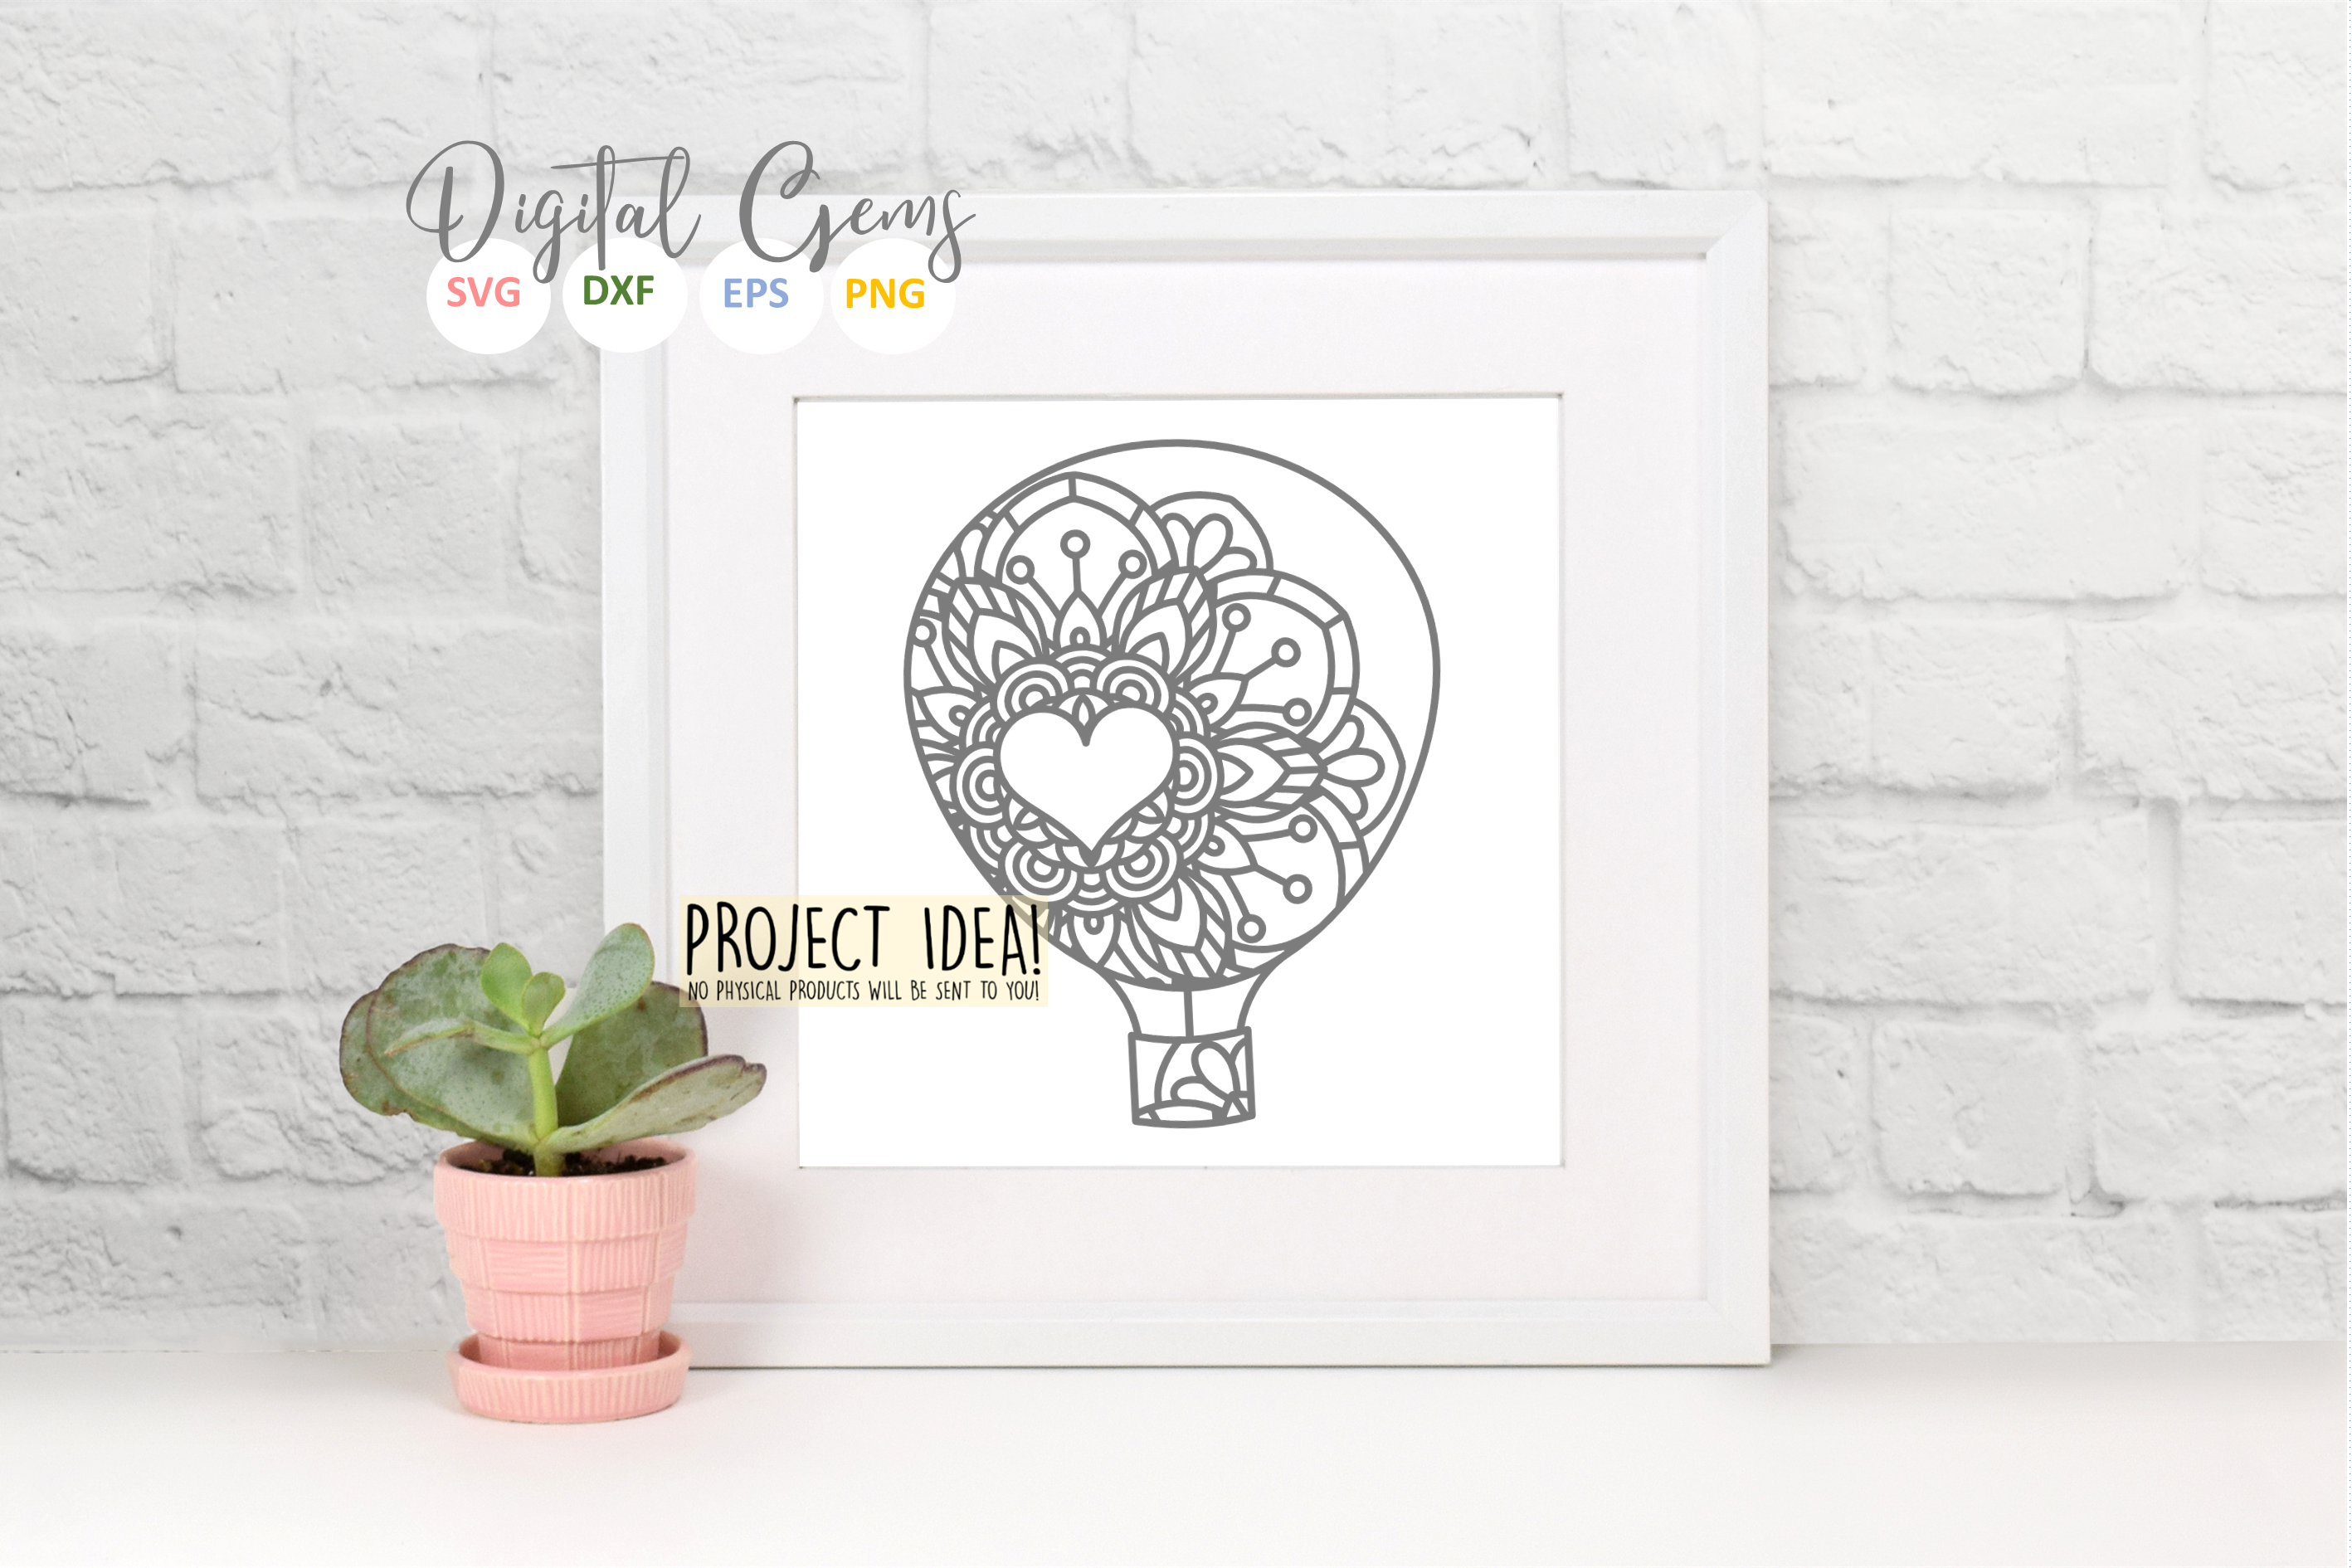 Hot air balloon paper cut design SVG / DXF / EPS / PNG files example image 7